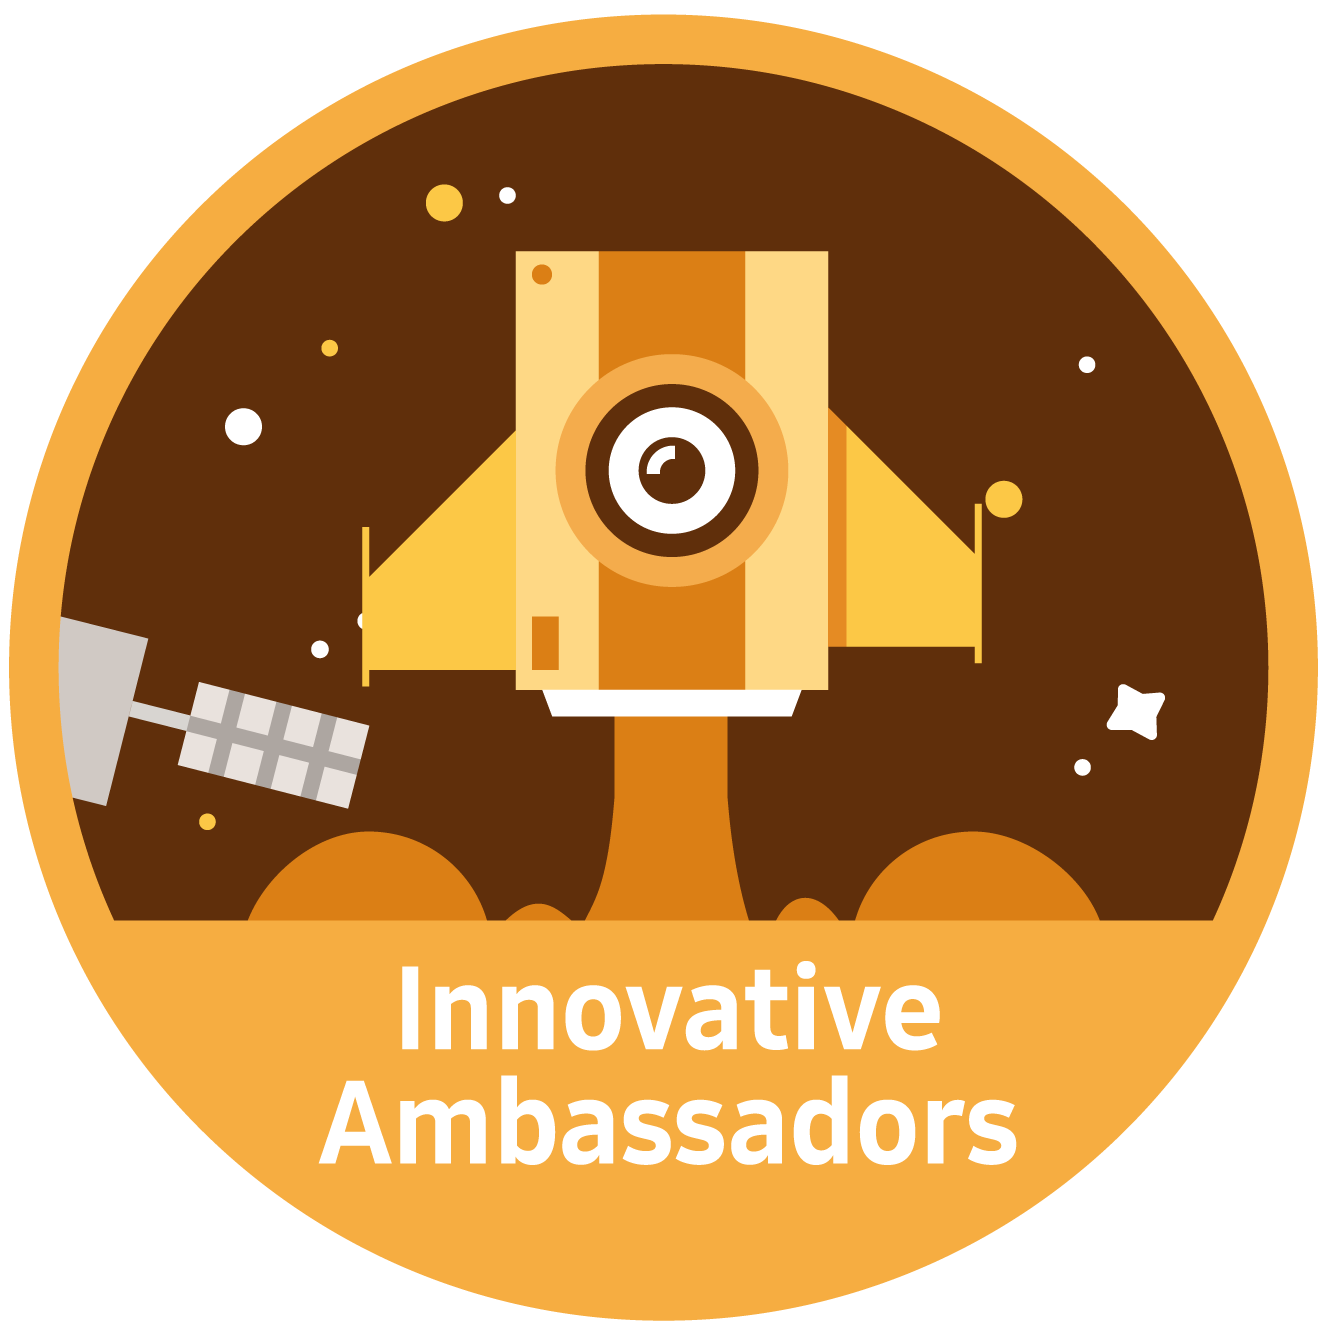 Innovative Ambassador